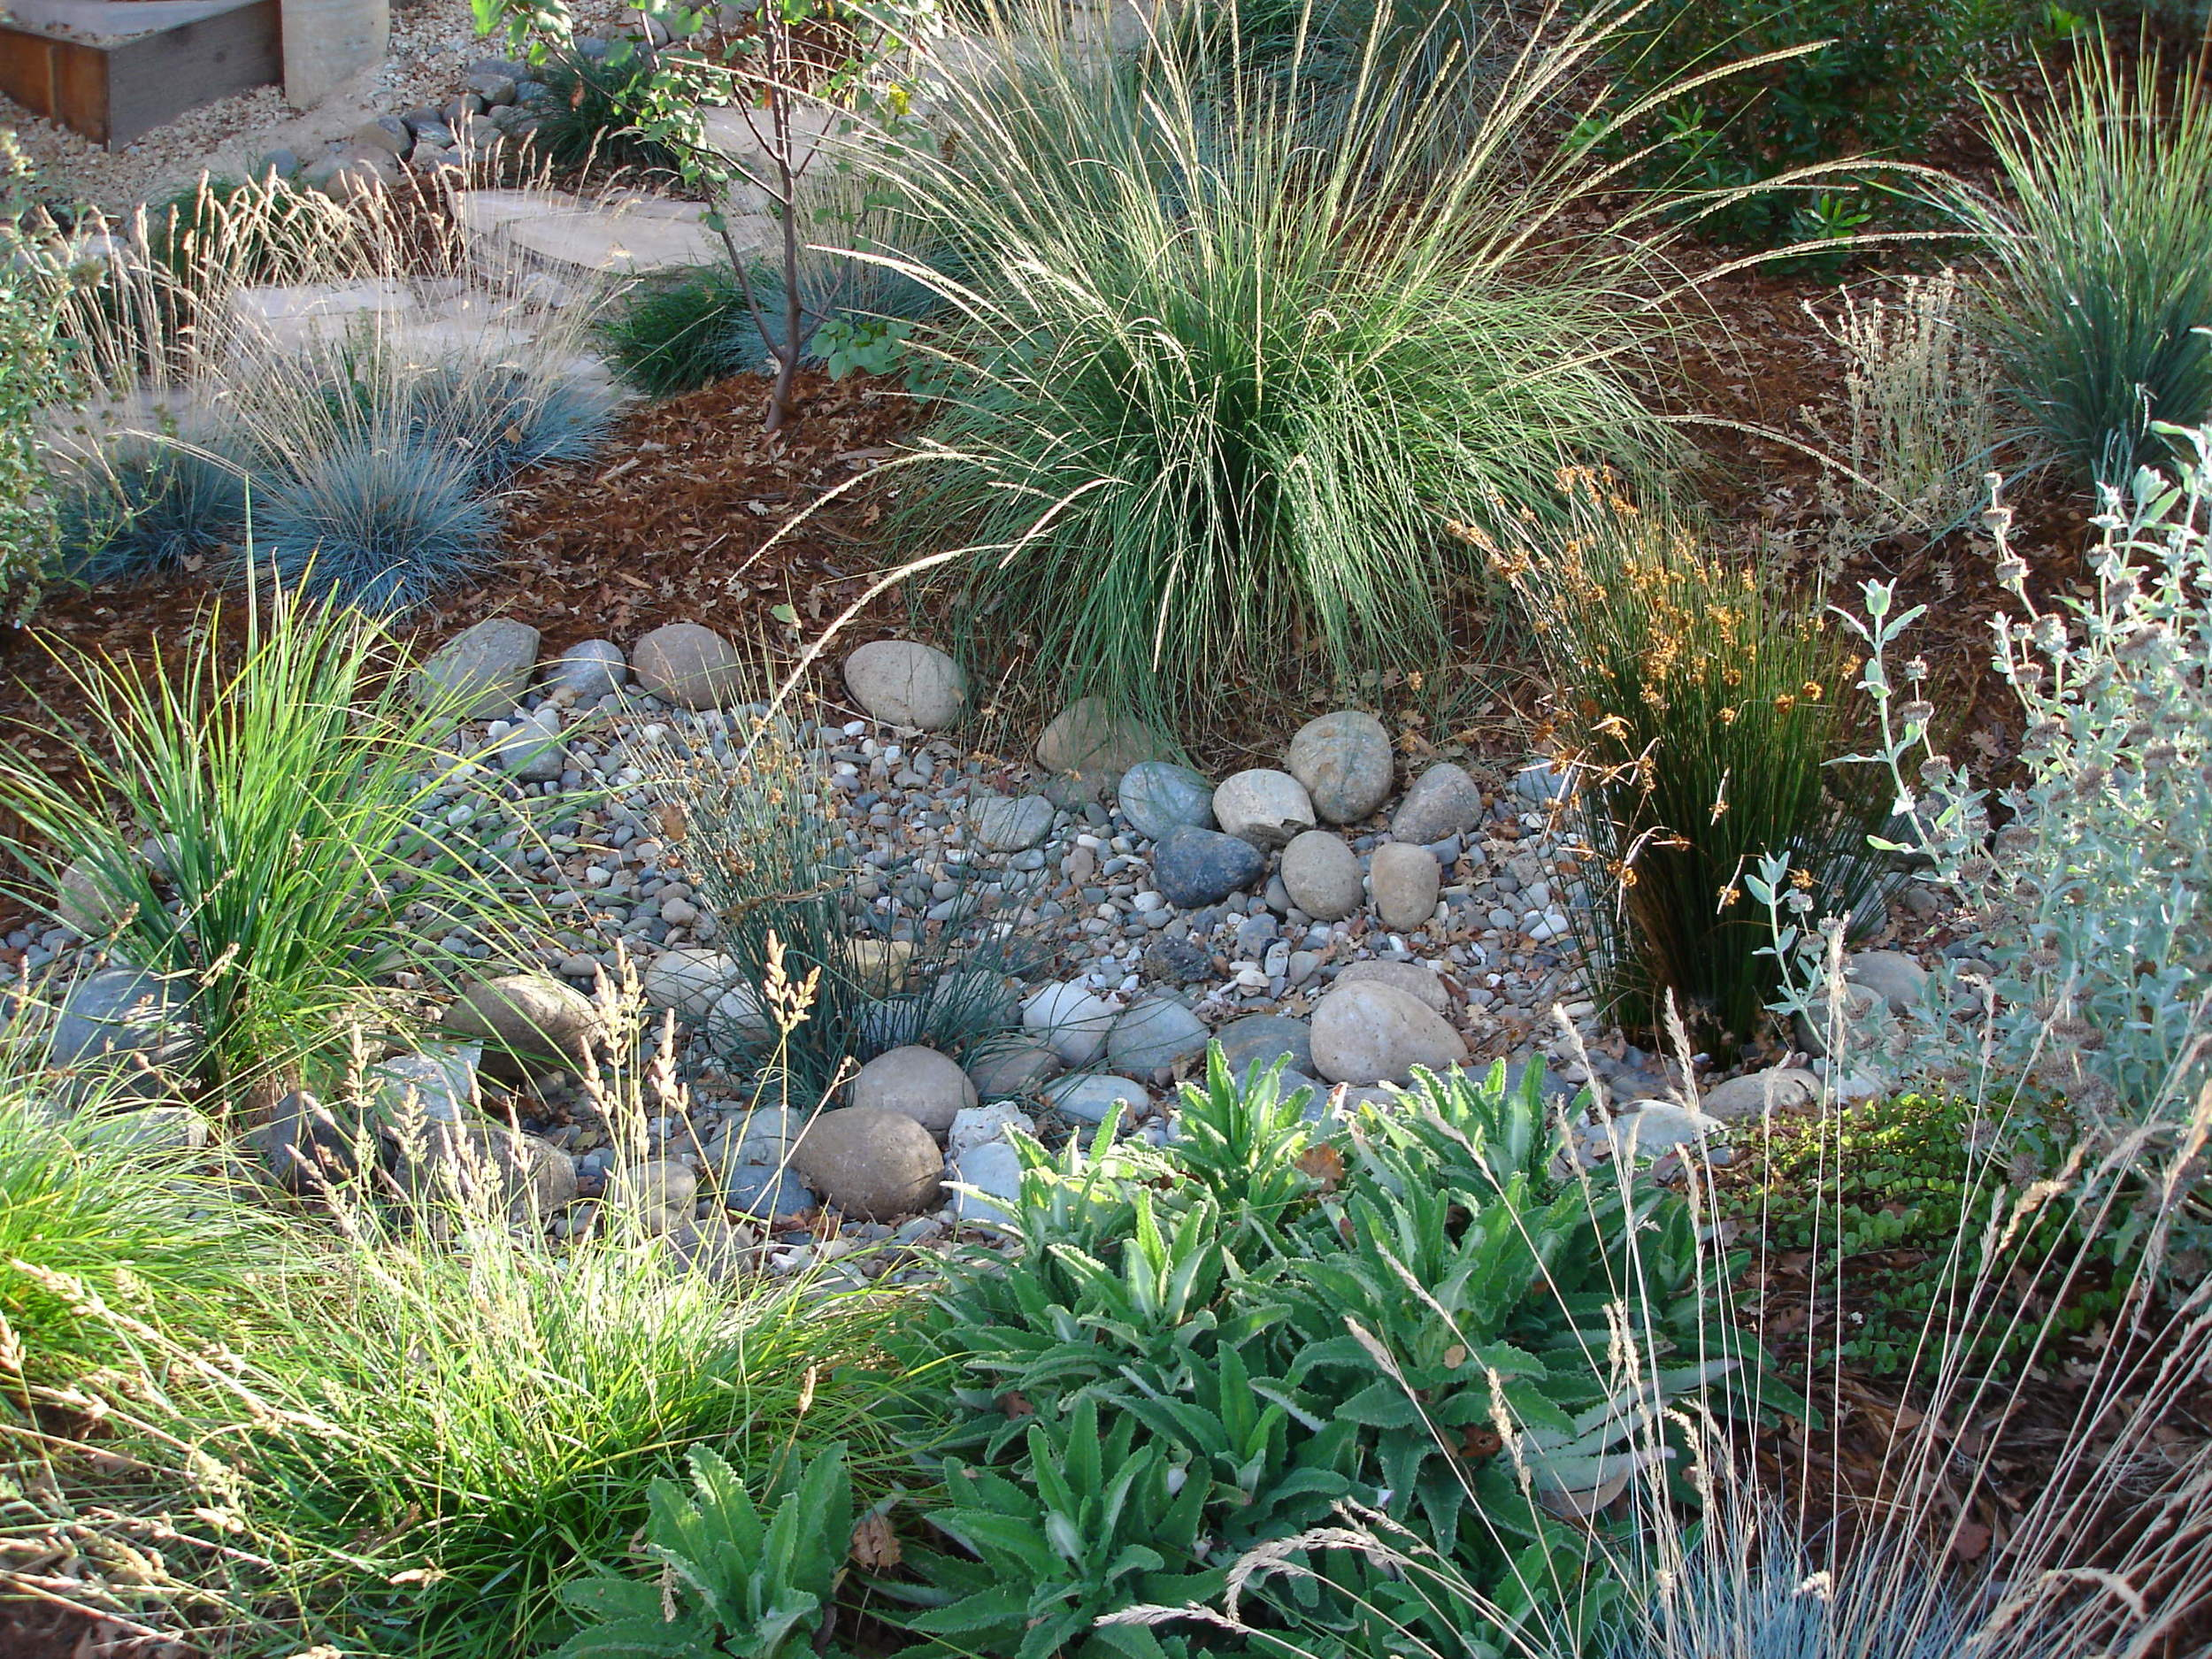 This is part of rain garden planting in Atascadero using California native trees, grasses, and flowers. It is designed to be irrigated by seasonal run-off, slow down storm water flows, and catch floating debris before the water overflows to a natural creek area below the property.